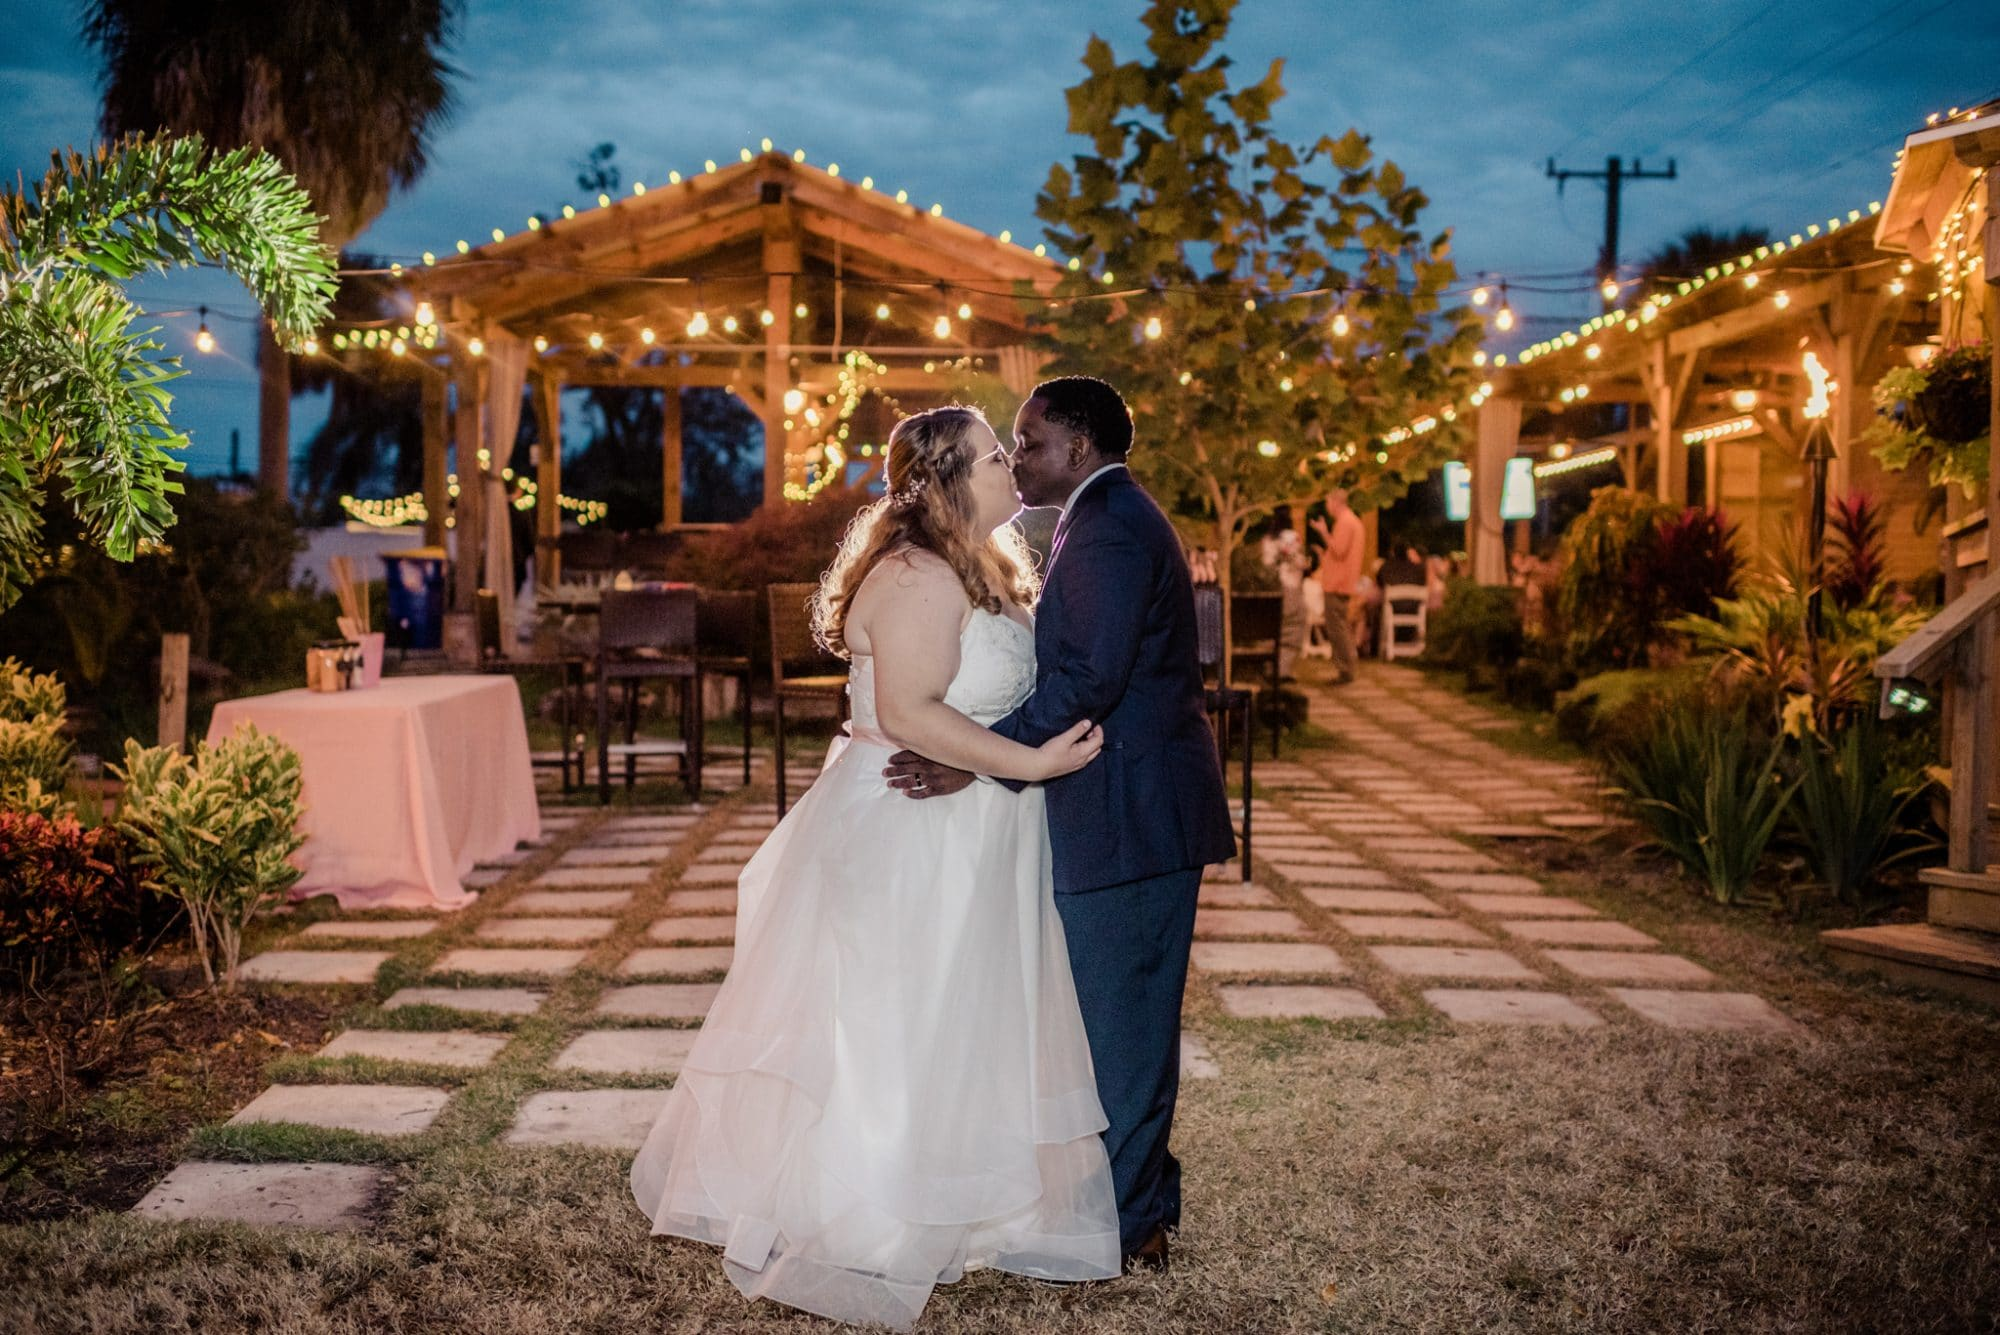 Rockledge Gardens - bride and groom kissing among pavilions strung with market lighting